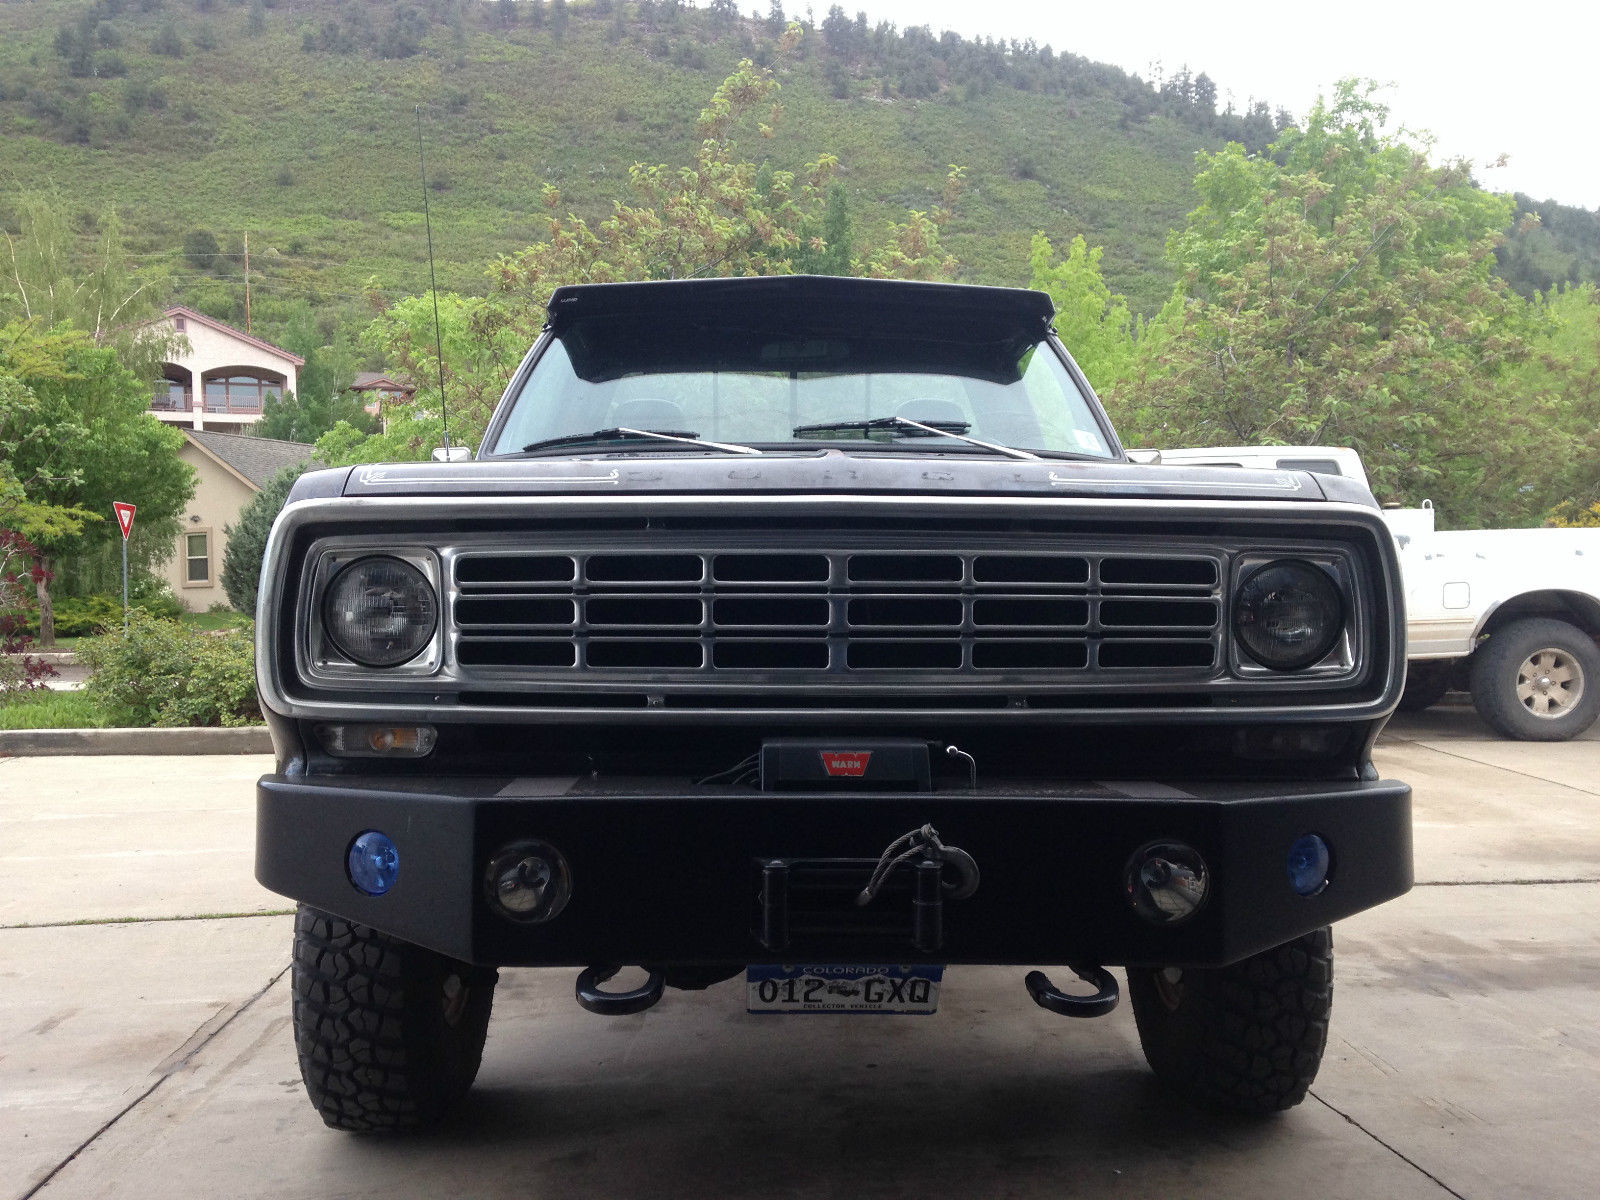 1976 Dodge Warlock for sale in Bayfield, Colorado, United States